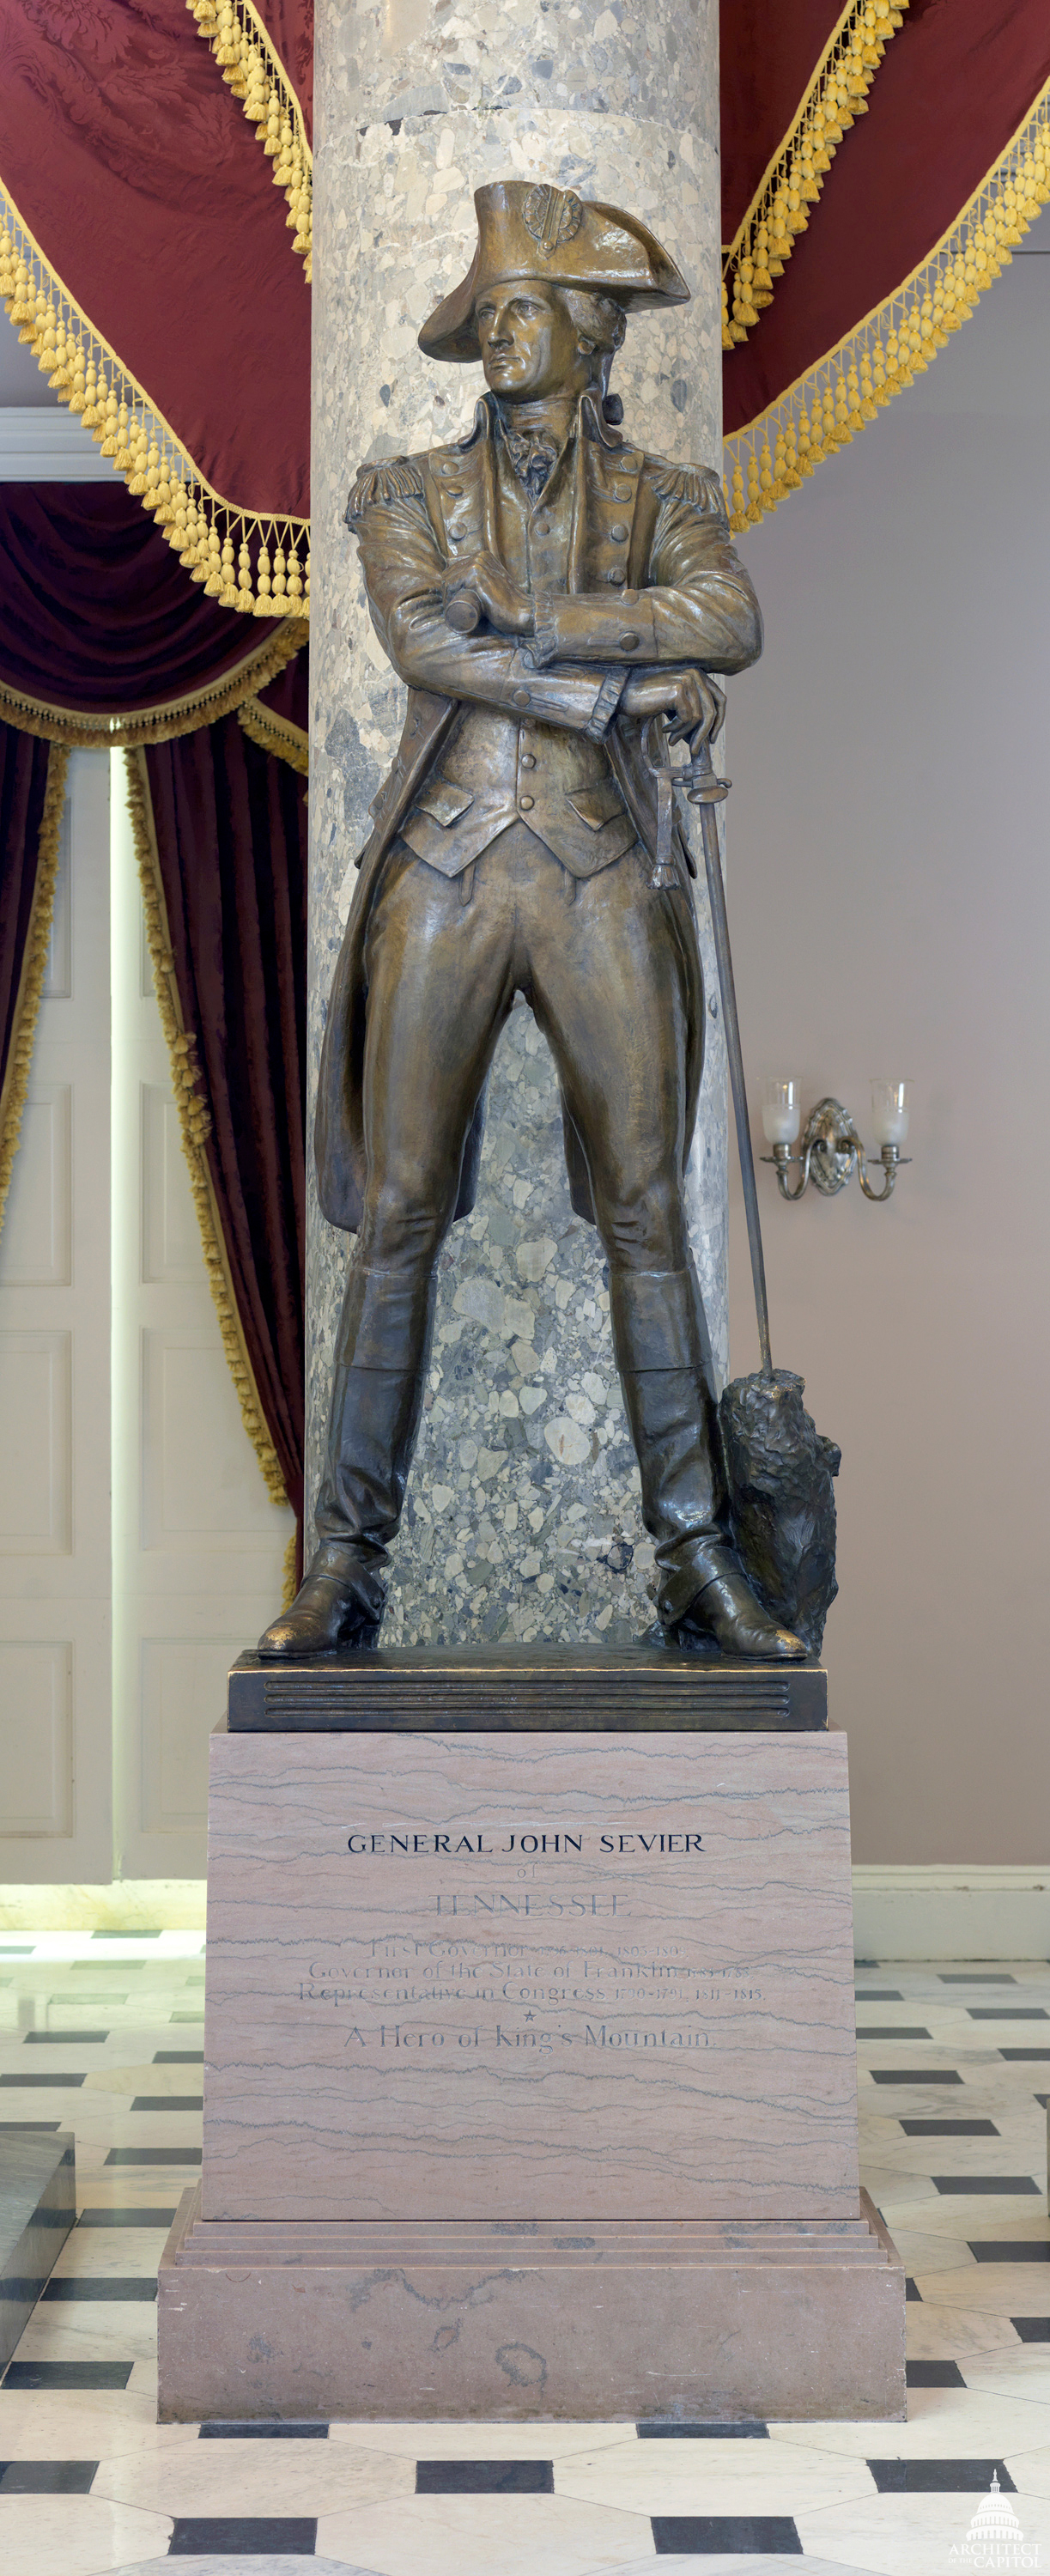 John Sevier Architect Of The Capitol